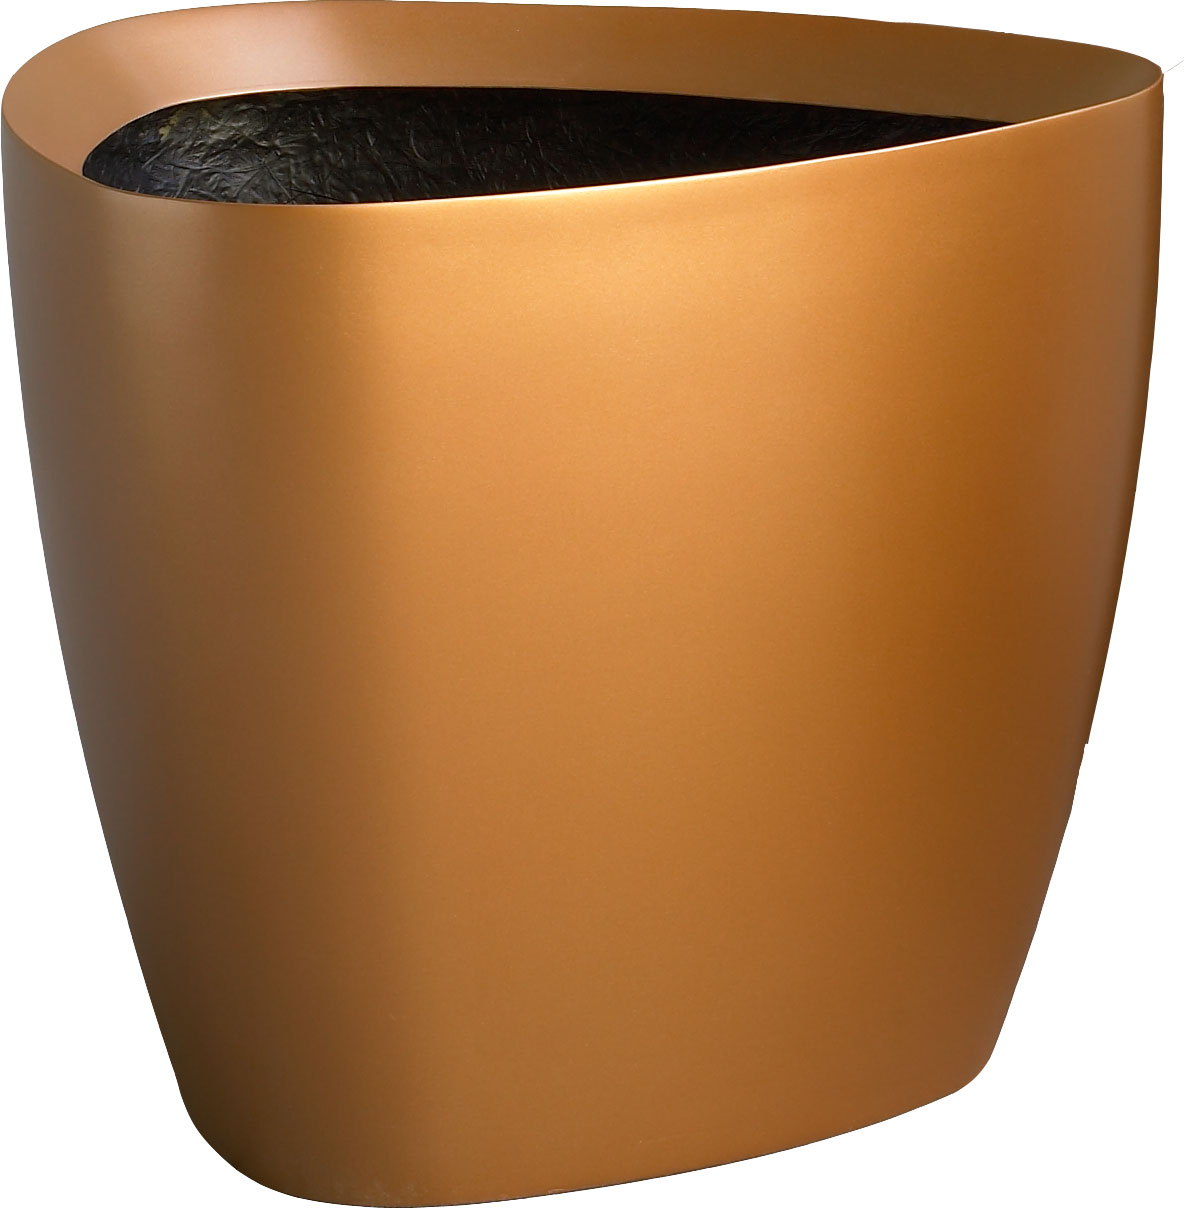 Fiberglass Container | Fiberglass Planters | Planters and Containers